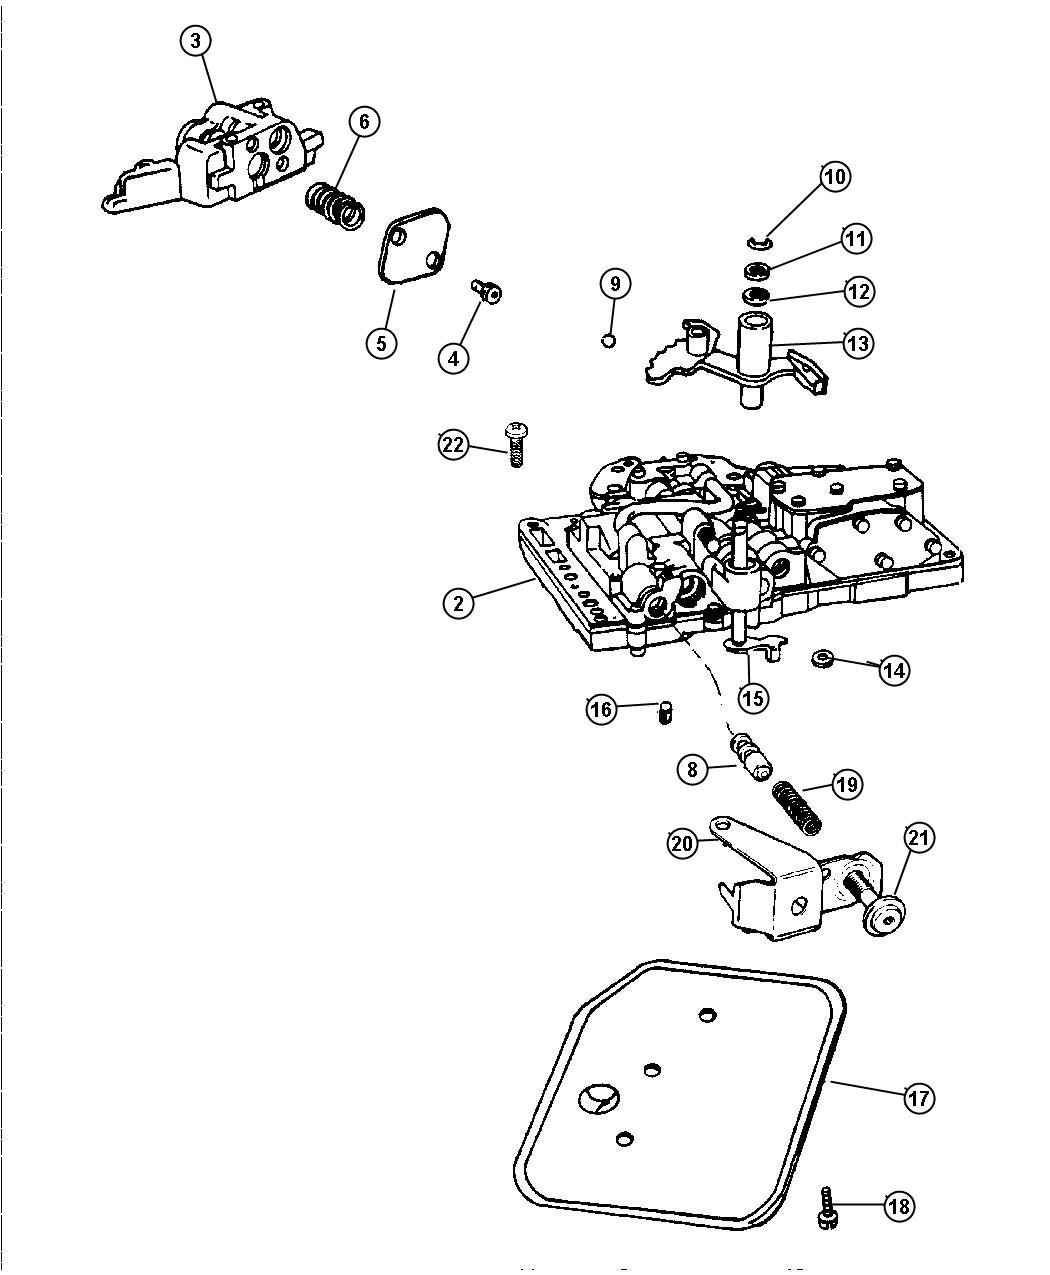 1992 jeep wrangler wiring diagram 05 chevy cobalt radio yj parts imageresizertool com